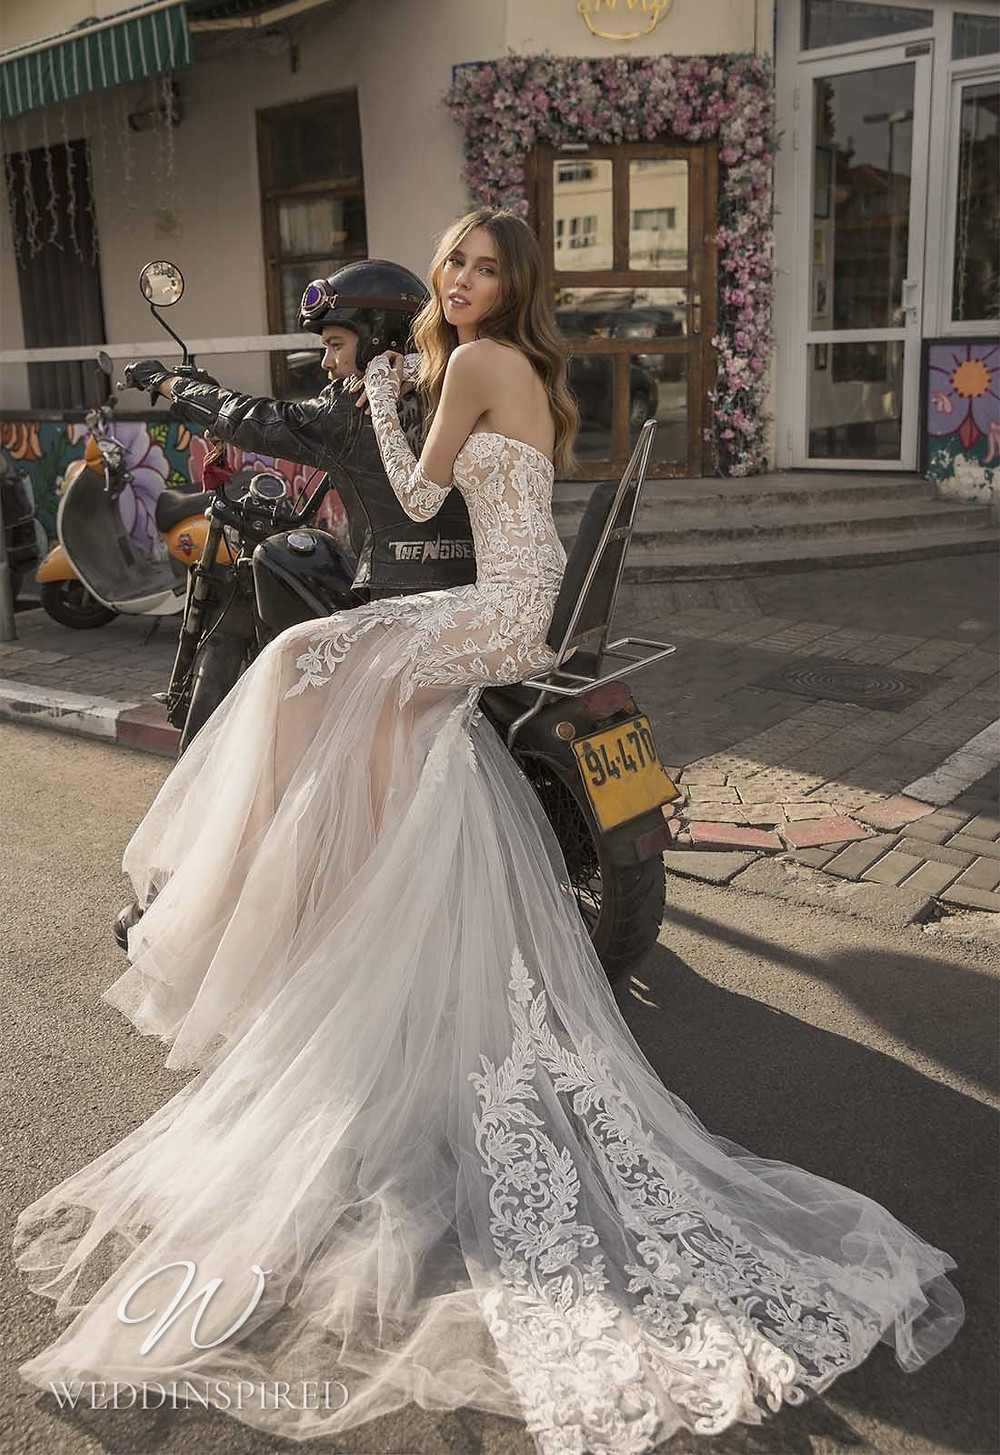 A Pnina Tornai 2021 strapless lace and tulle mermaid wedding dress